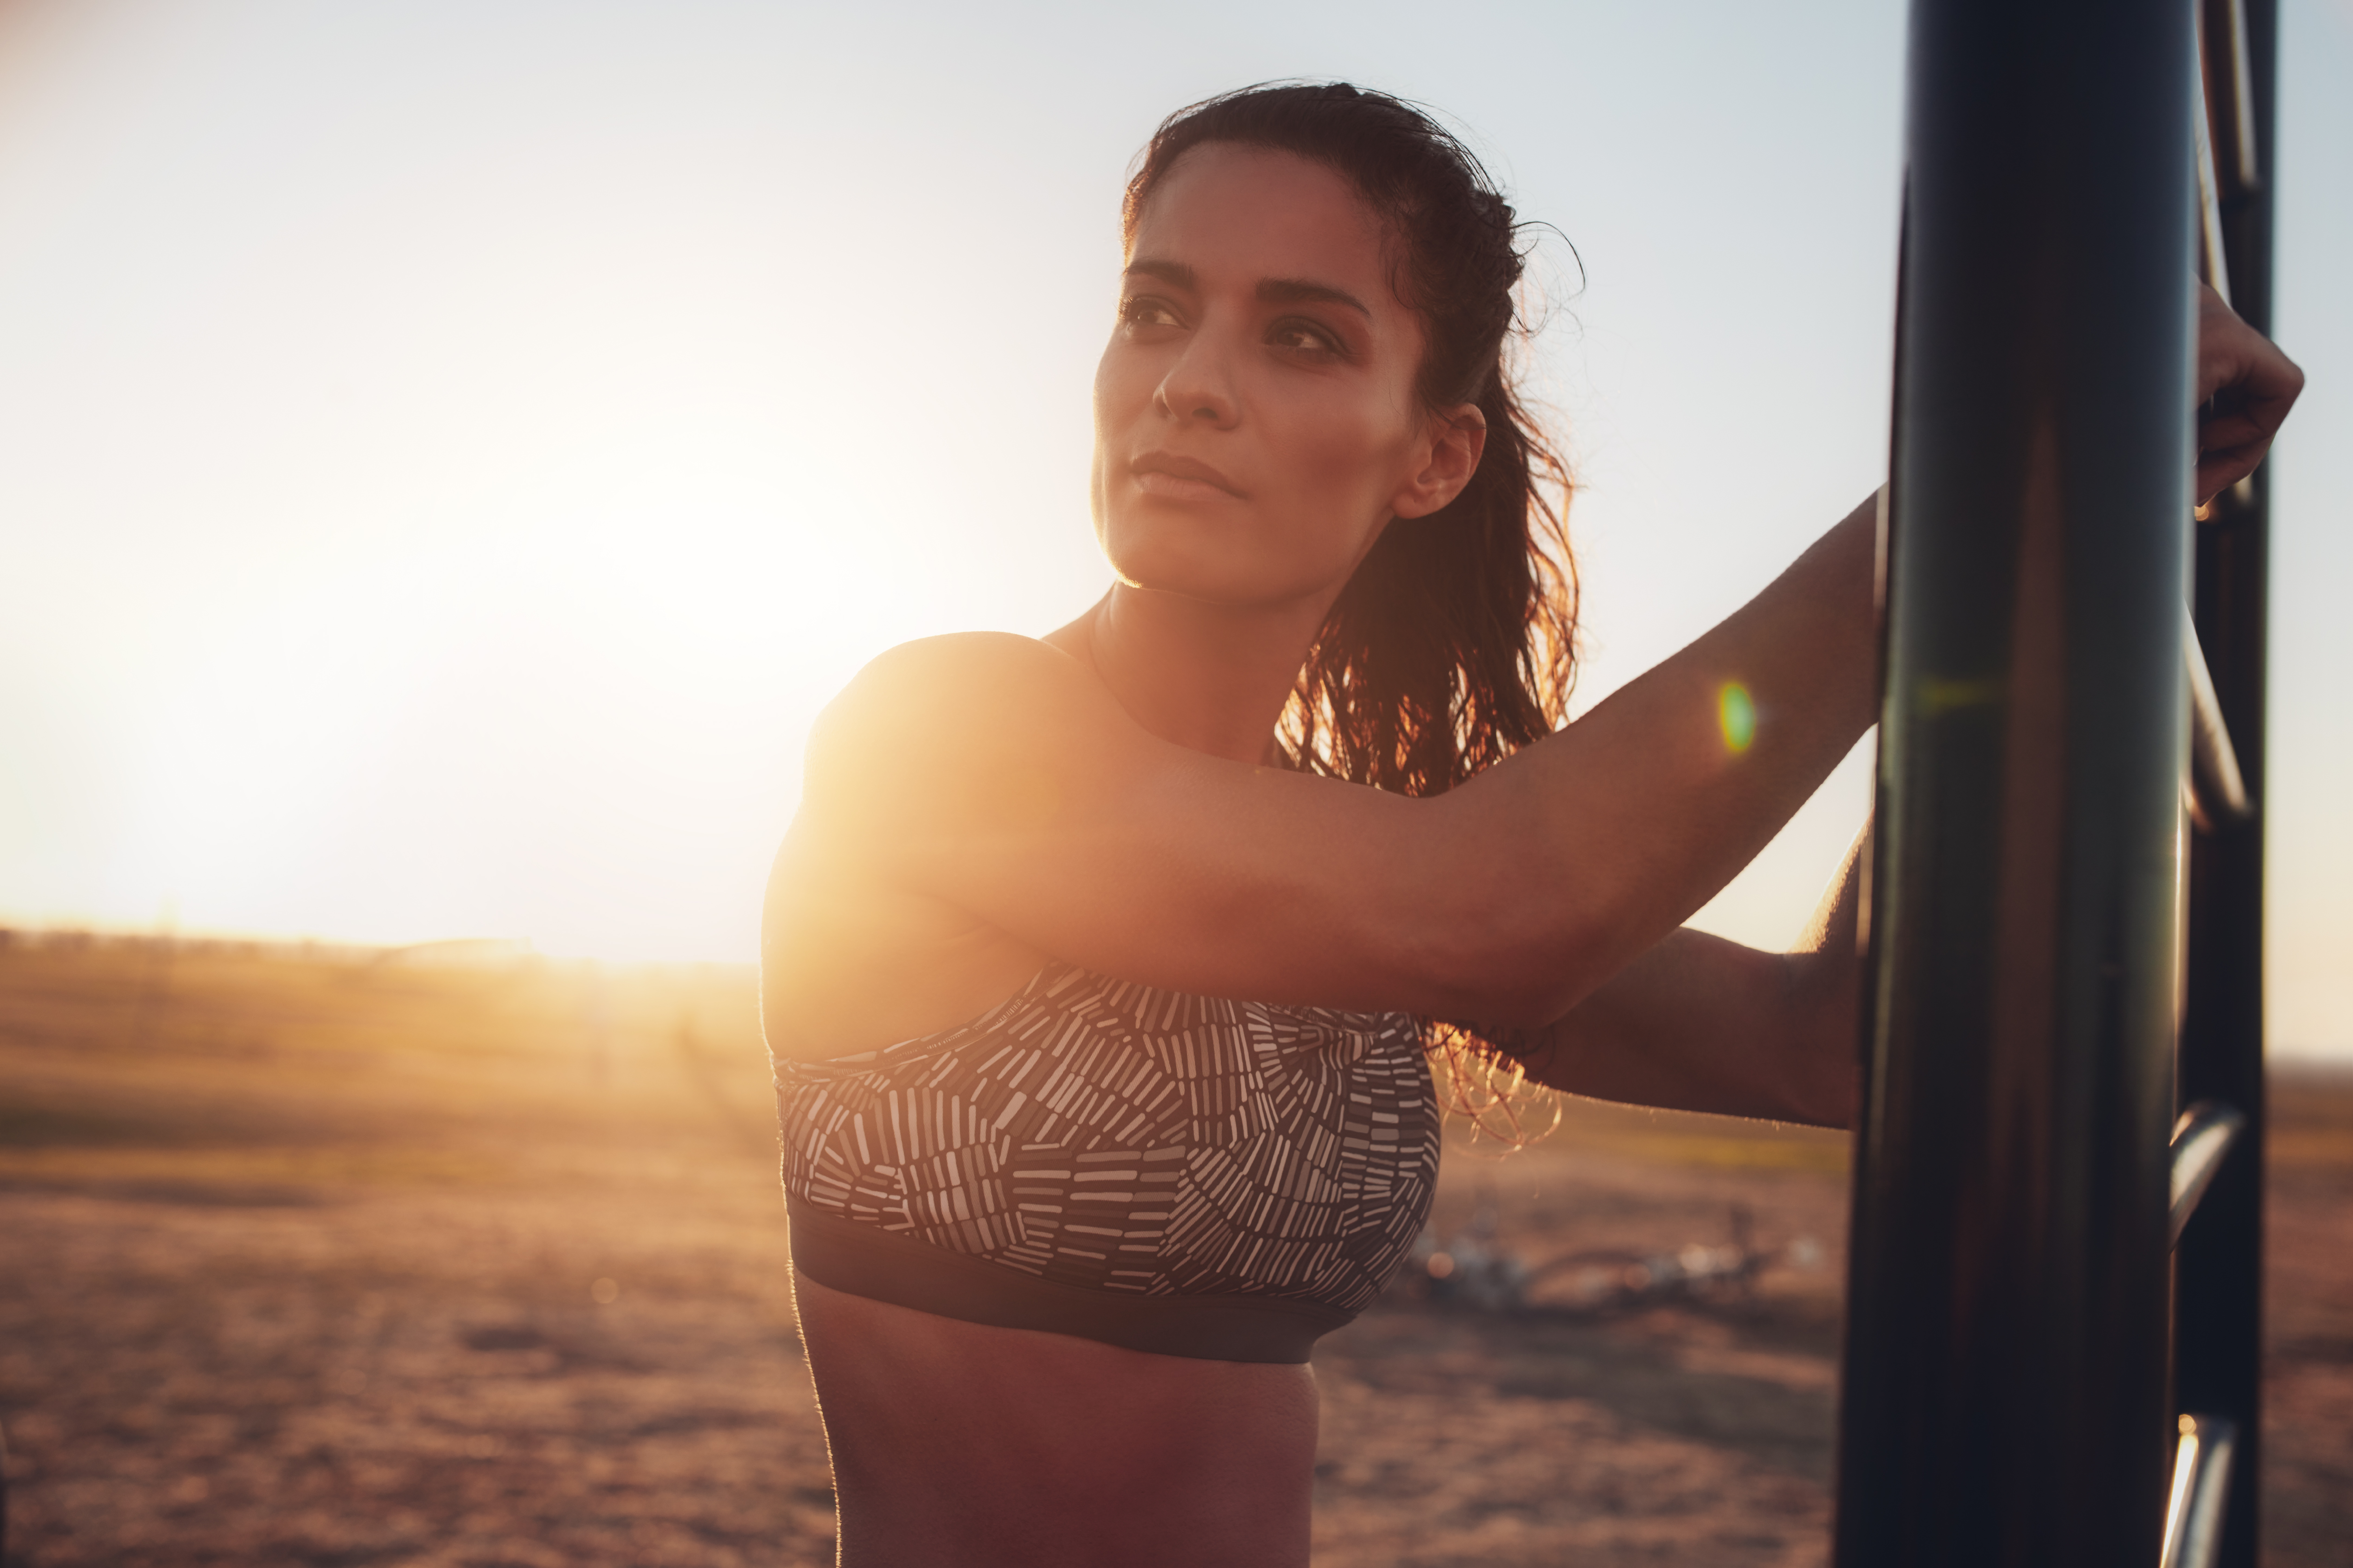 Fitness woman standing outdoors and looking away